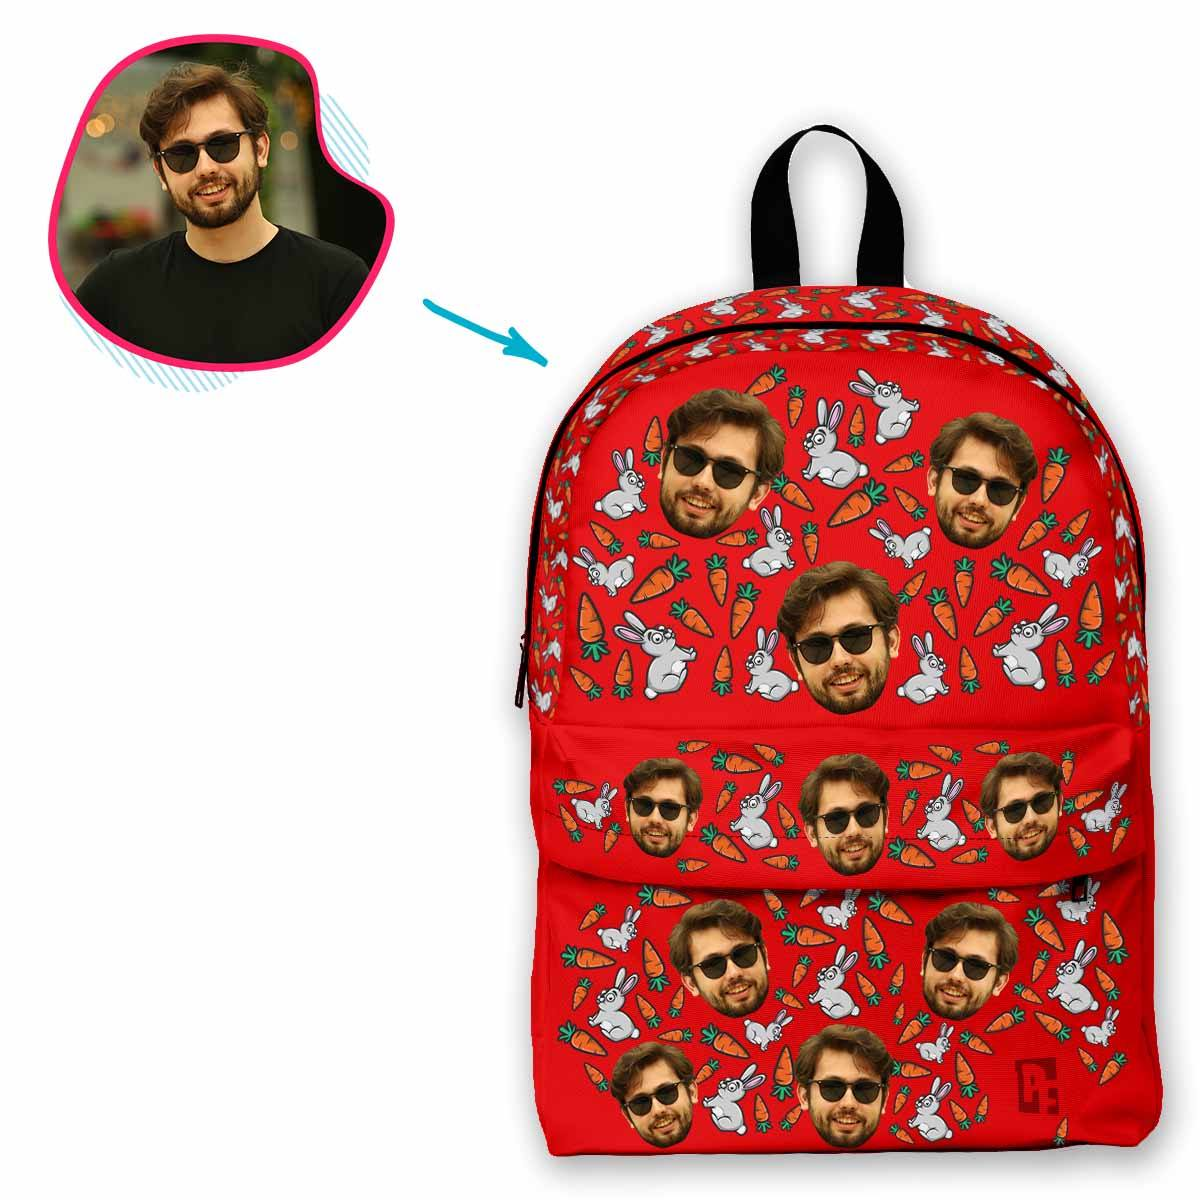 red Bunny classic backpack personalized with photo of face printed on it